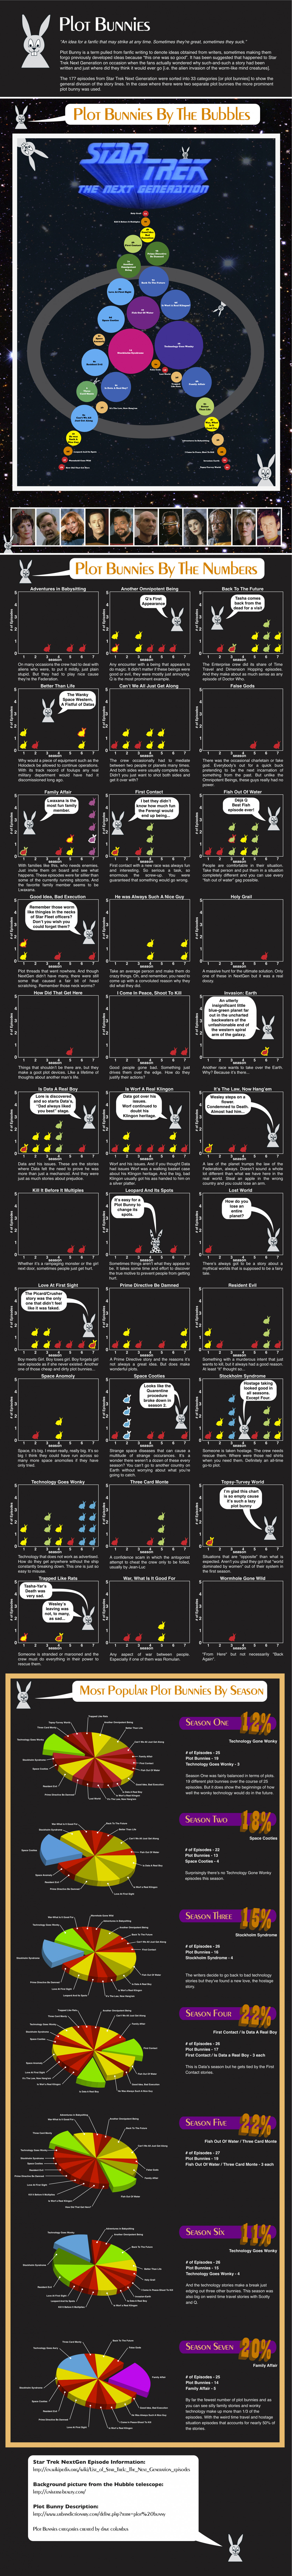 Star Trek NextGen Plot Bunnies Infographic